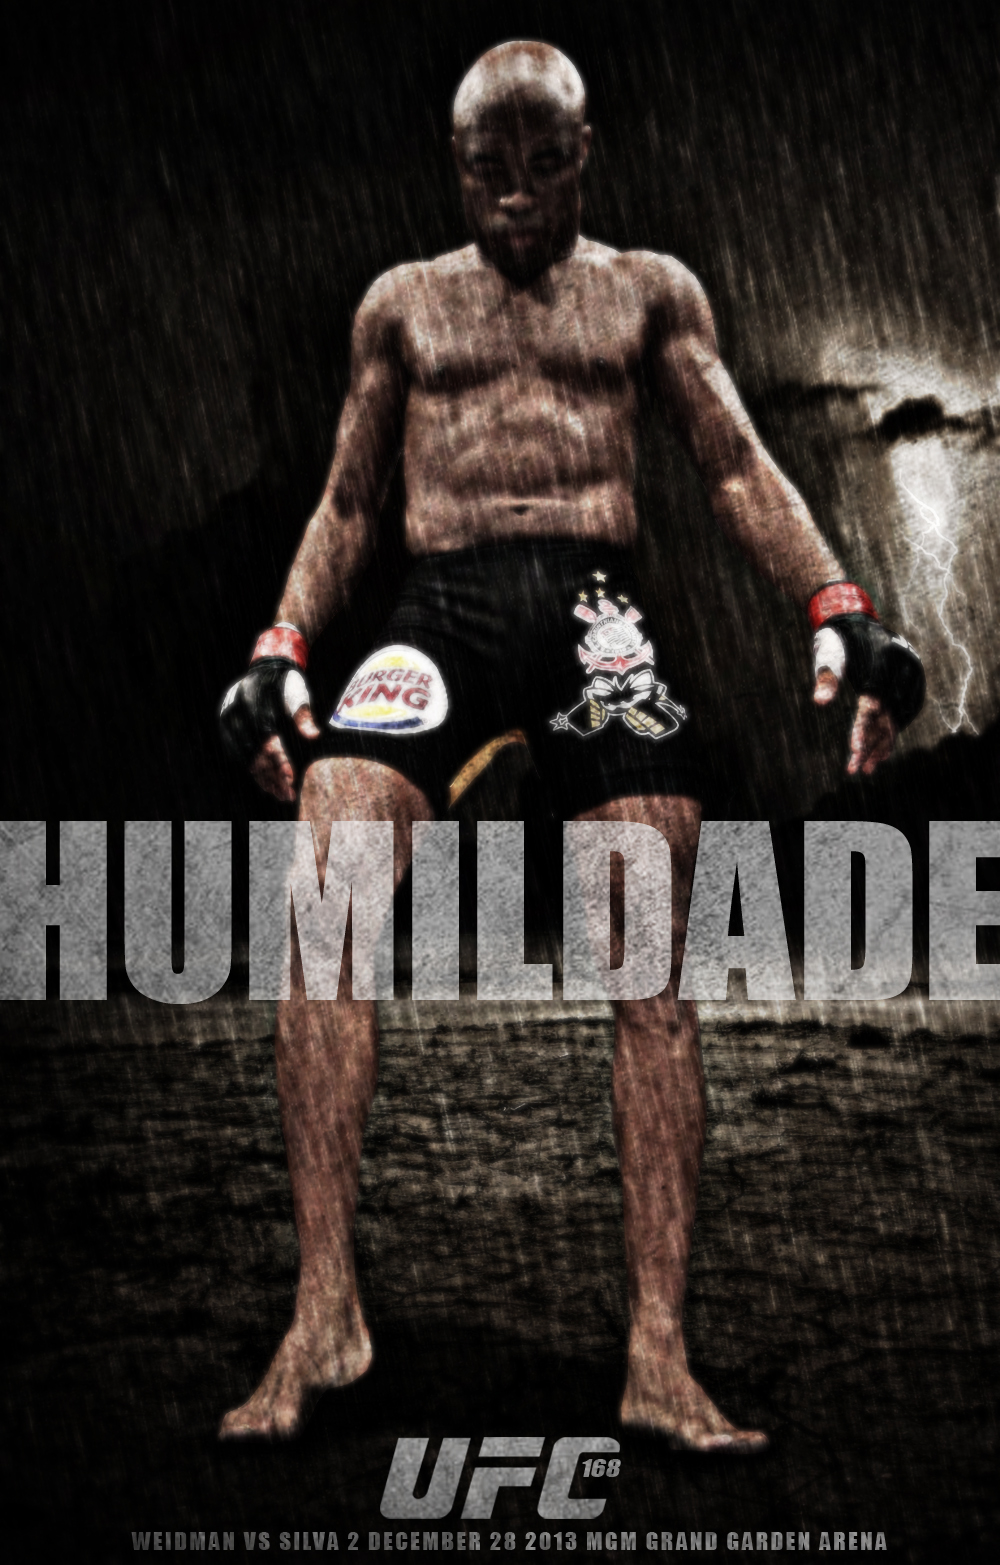 Humildade ufc 168 poster by AronianUfc 168 Poster